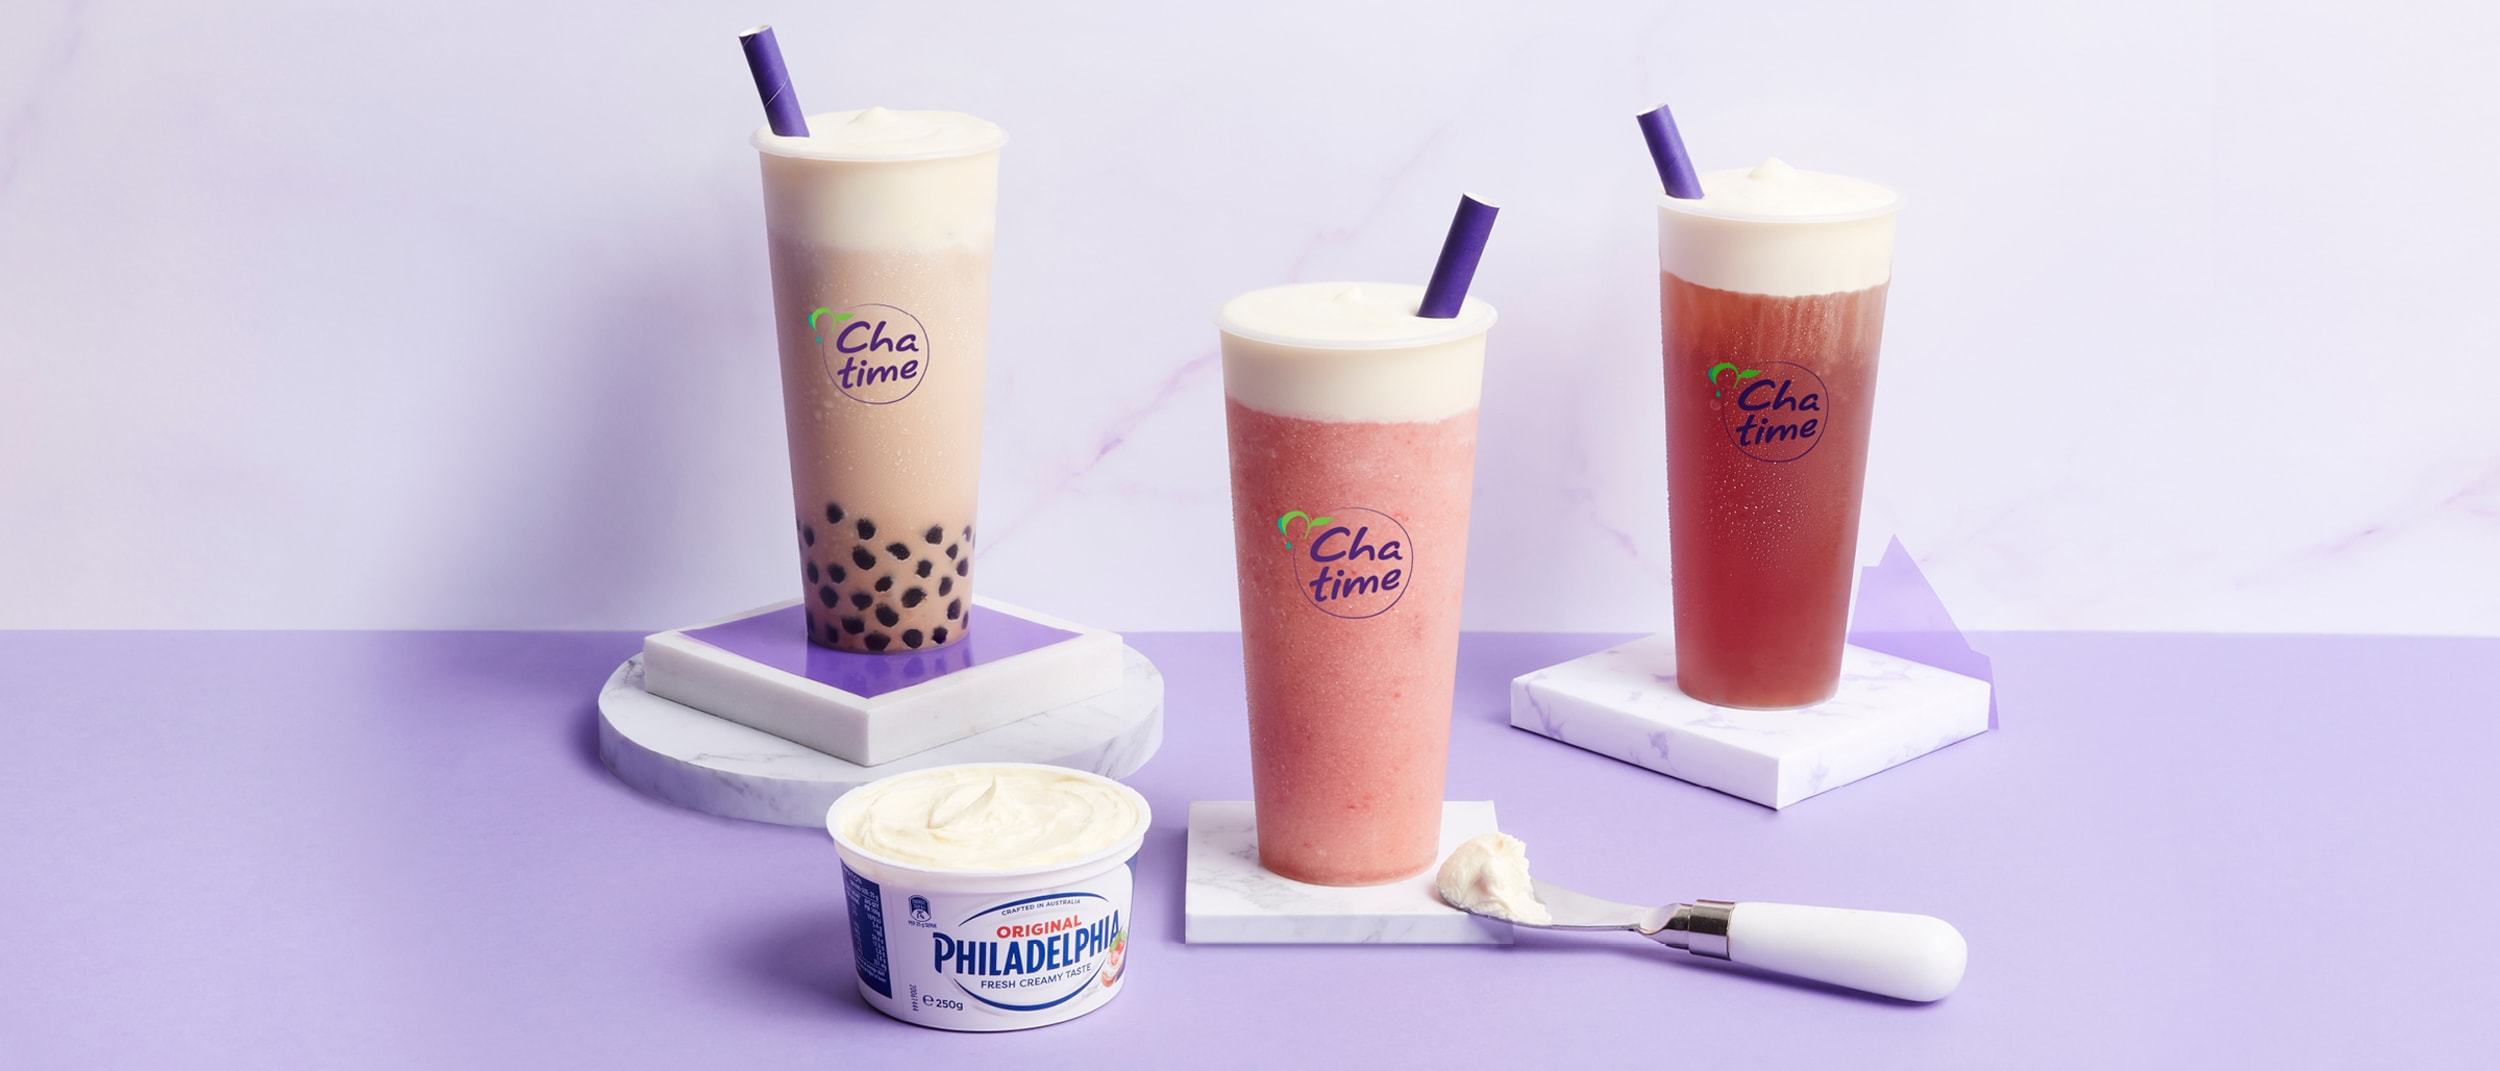 Chatime: We're whipped for the new Philly® Cream Mousse